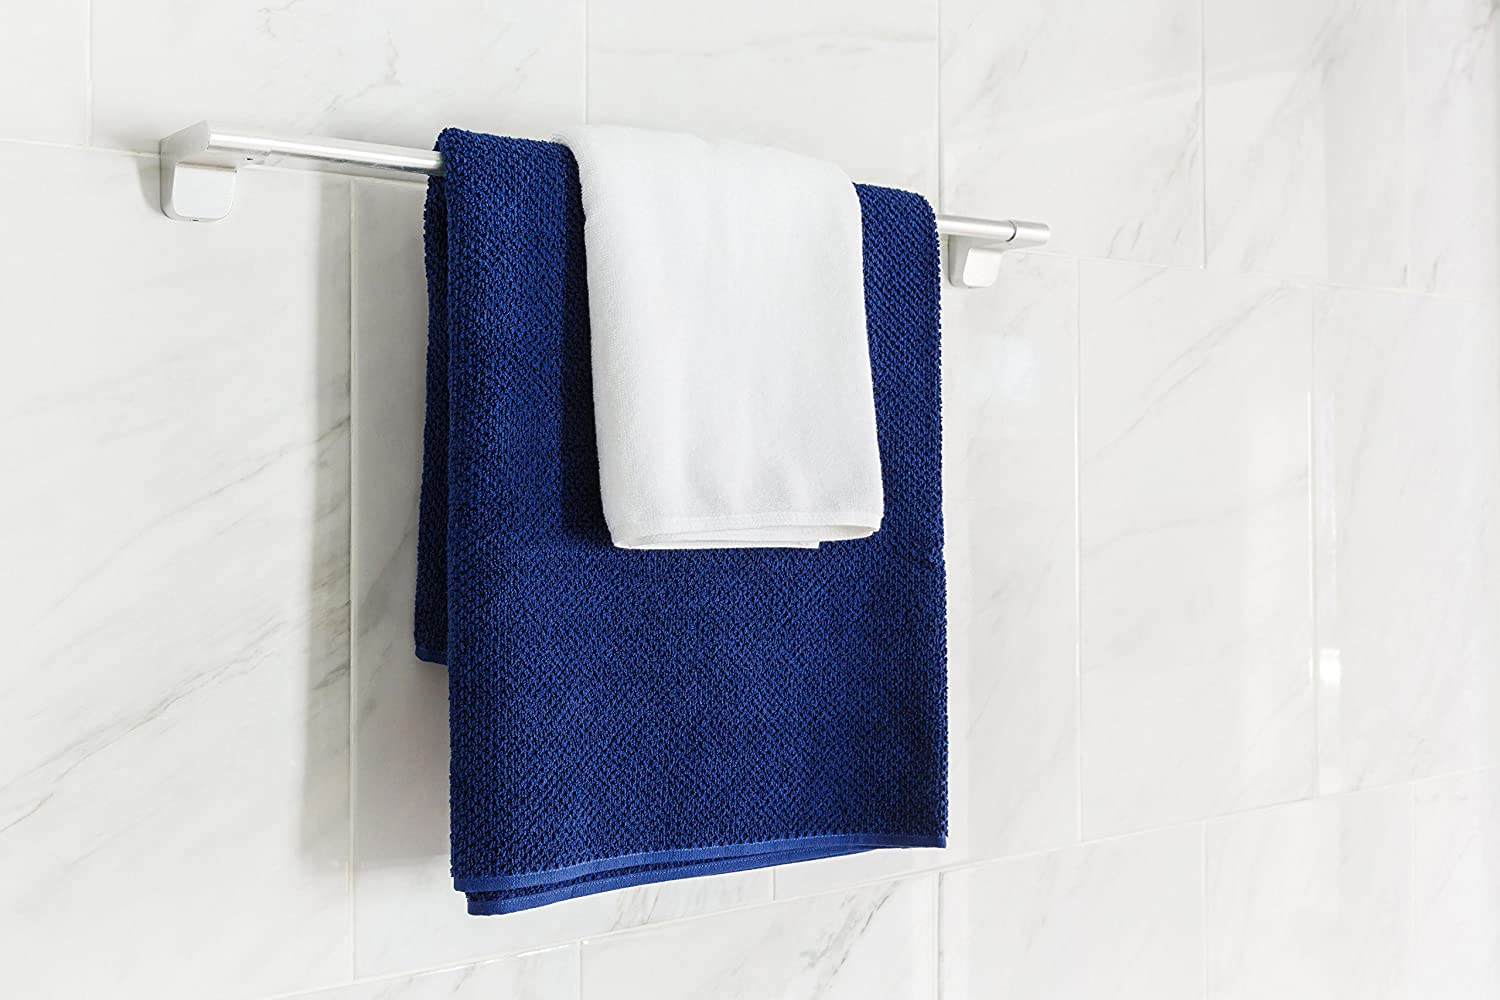 Amazon.com: Bath Towels Blue 4-Piece Set - 100% Cotton Luxury Quick Dry Turkish Towels for Bathroom, Guests, Hot Tub - Hotel Quality Collection Bath Towels, ...